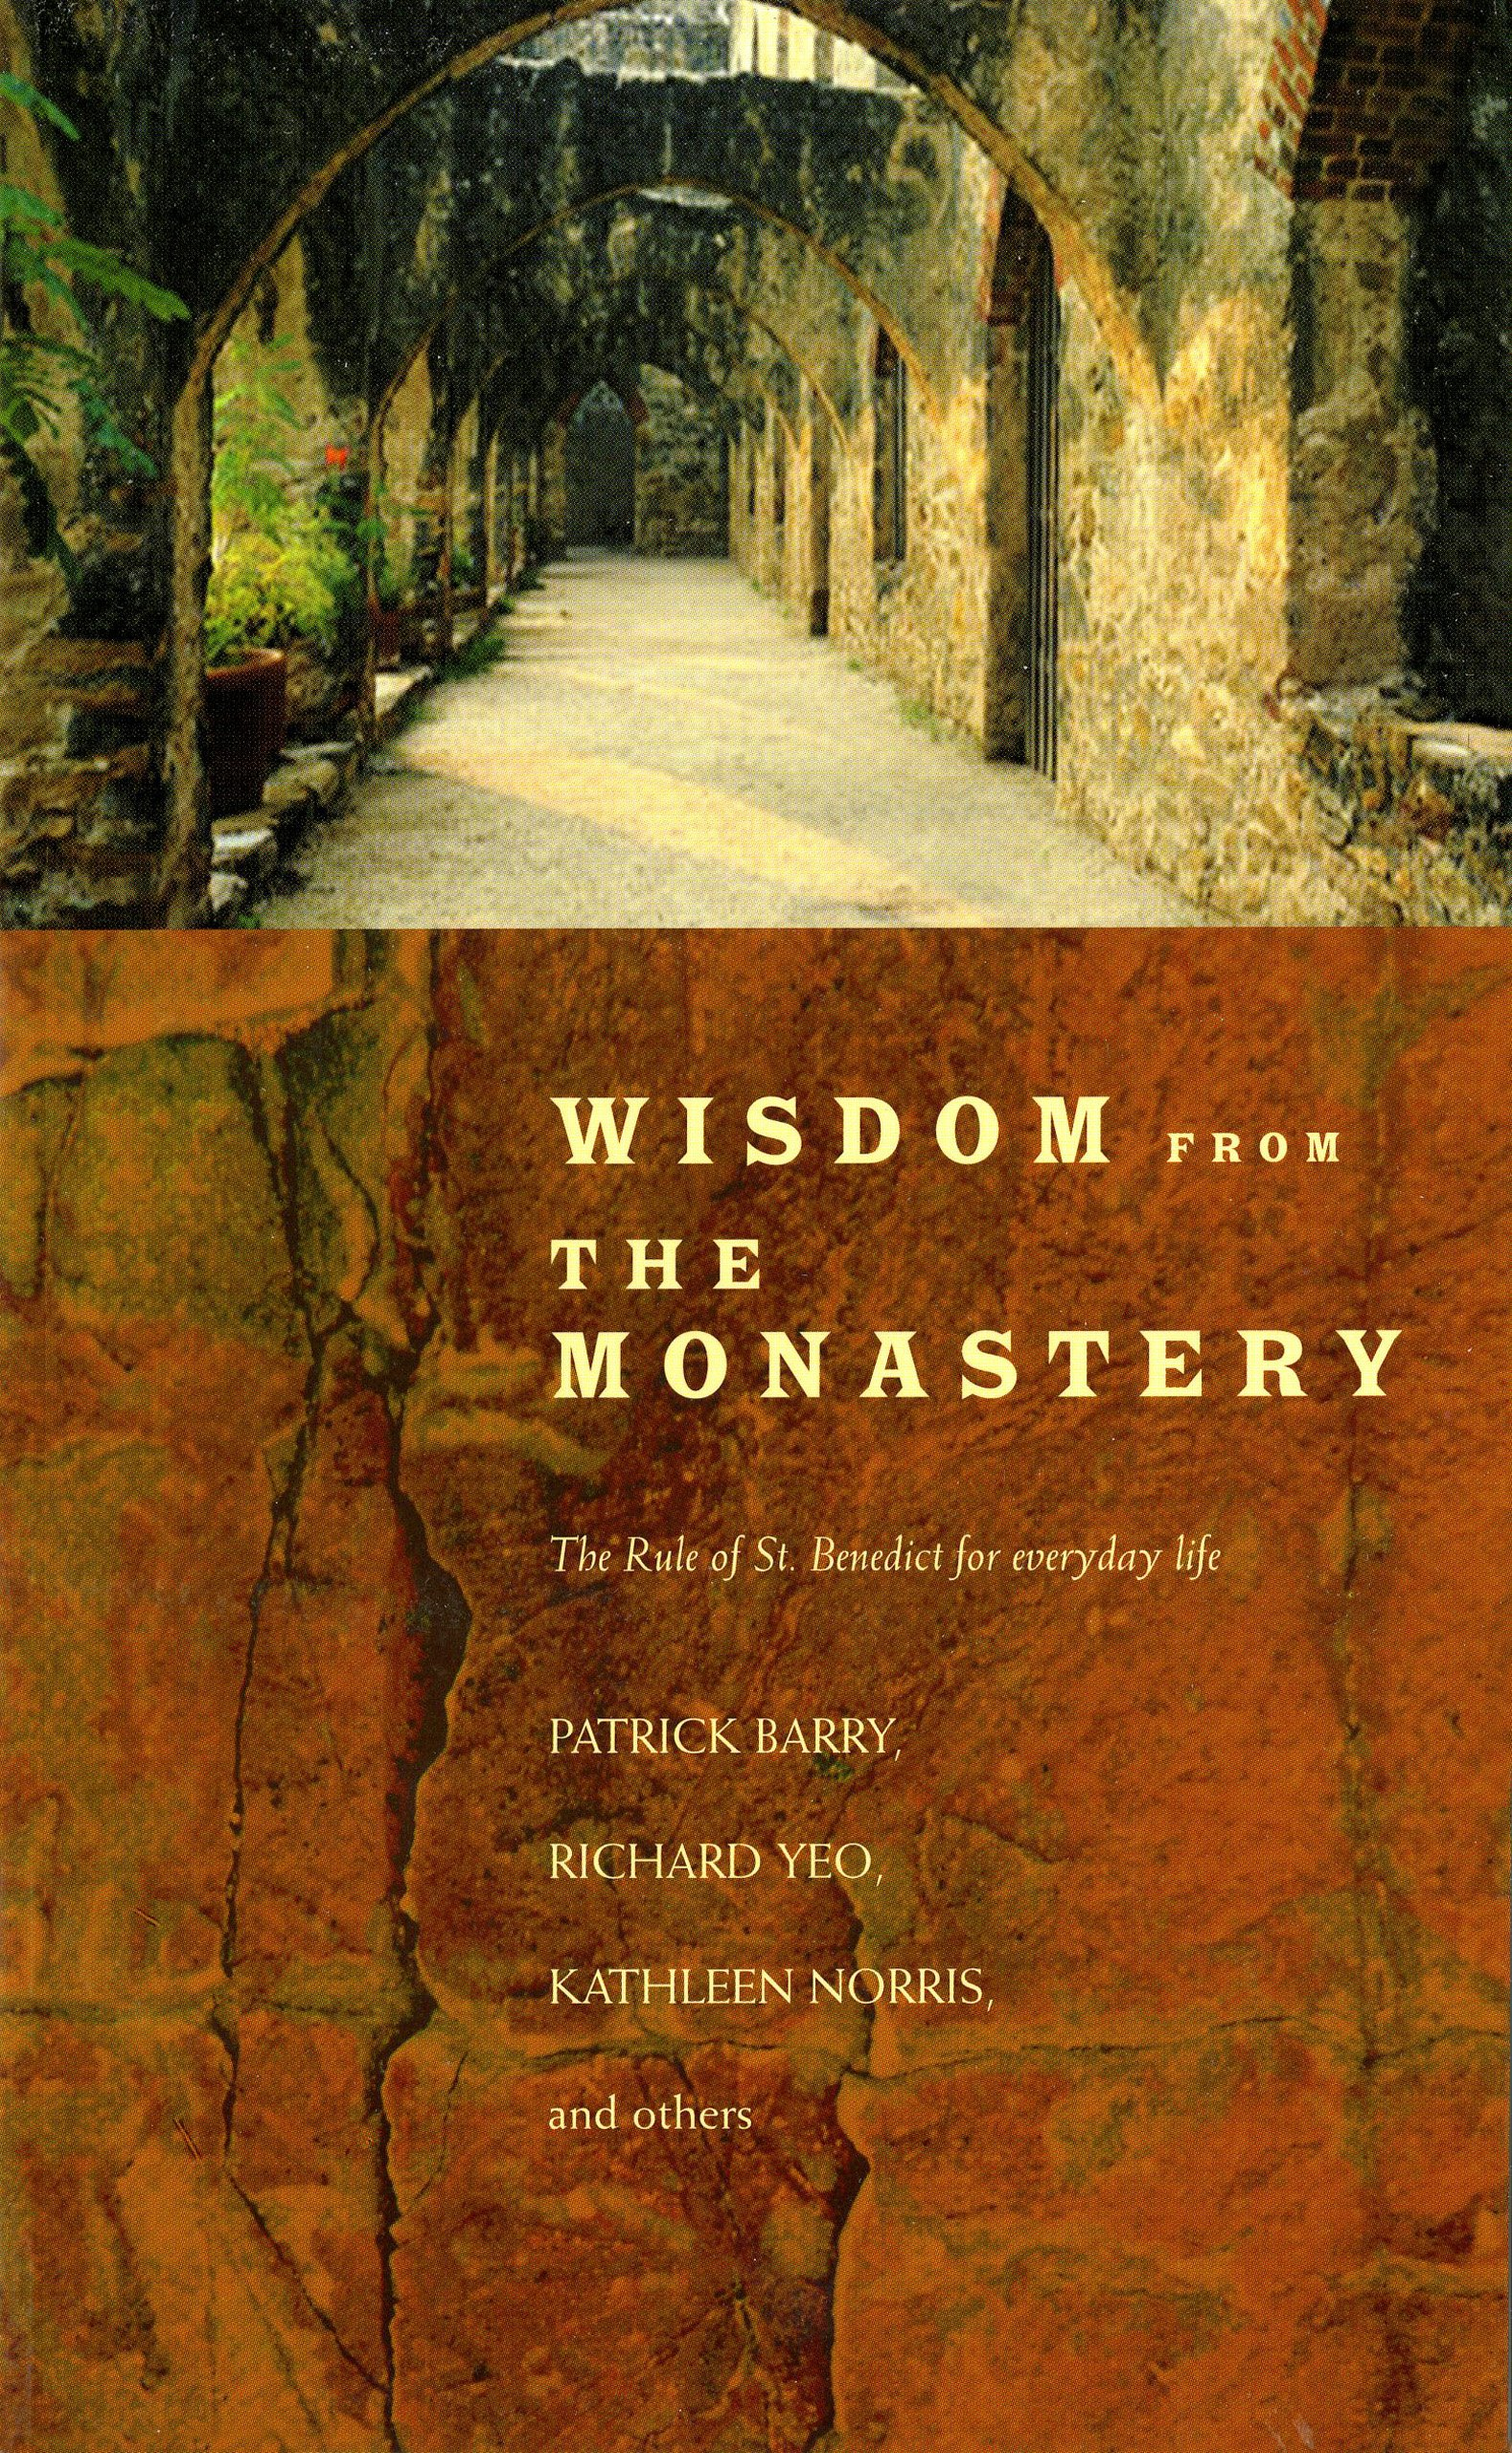 Wisdom from the monastery the rule of st benedict for everyday wisdom from the monastery the rule of st benedict for everyday life patrick barry richard yeo kathleen norris and others 9780814631539 amazon fandeluxe Gallery